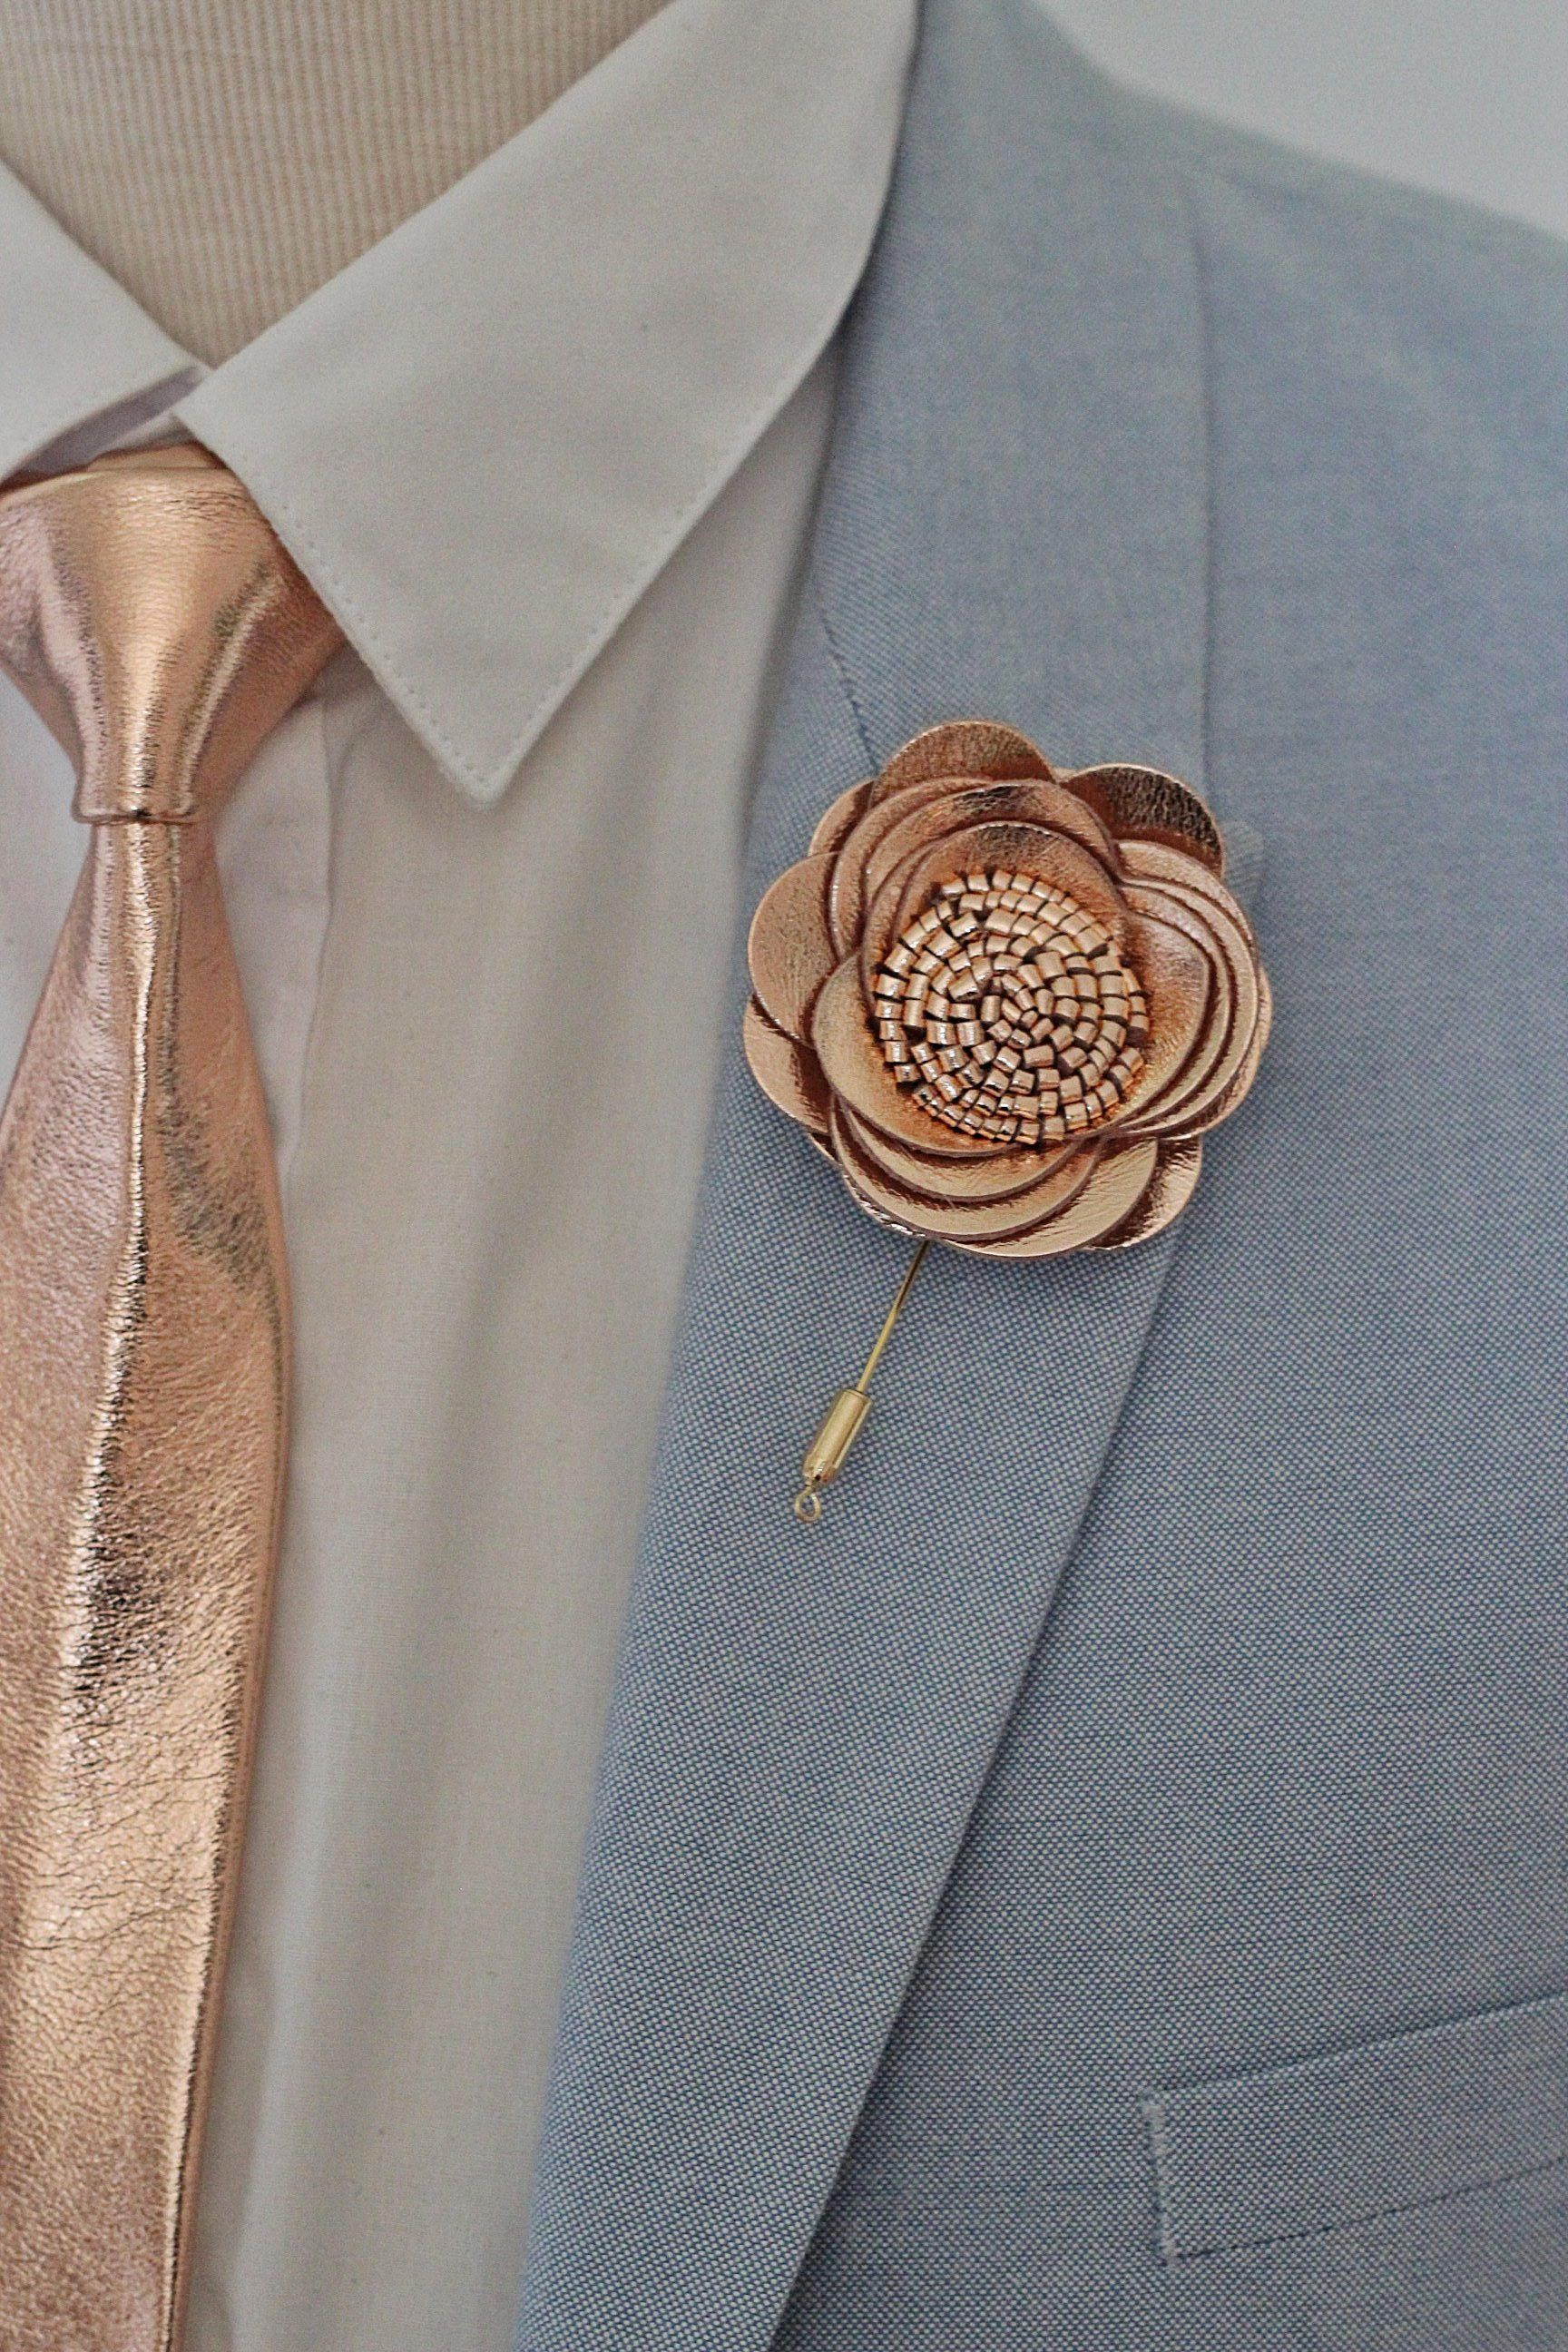 party suit boutonniere flower exquisite stick for jewelry from romantic brooch ship brooches wedding free handmade item pins women in men and lapel fabric